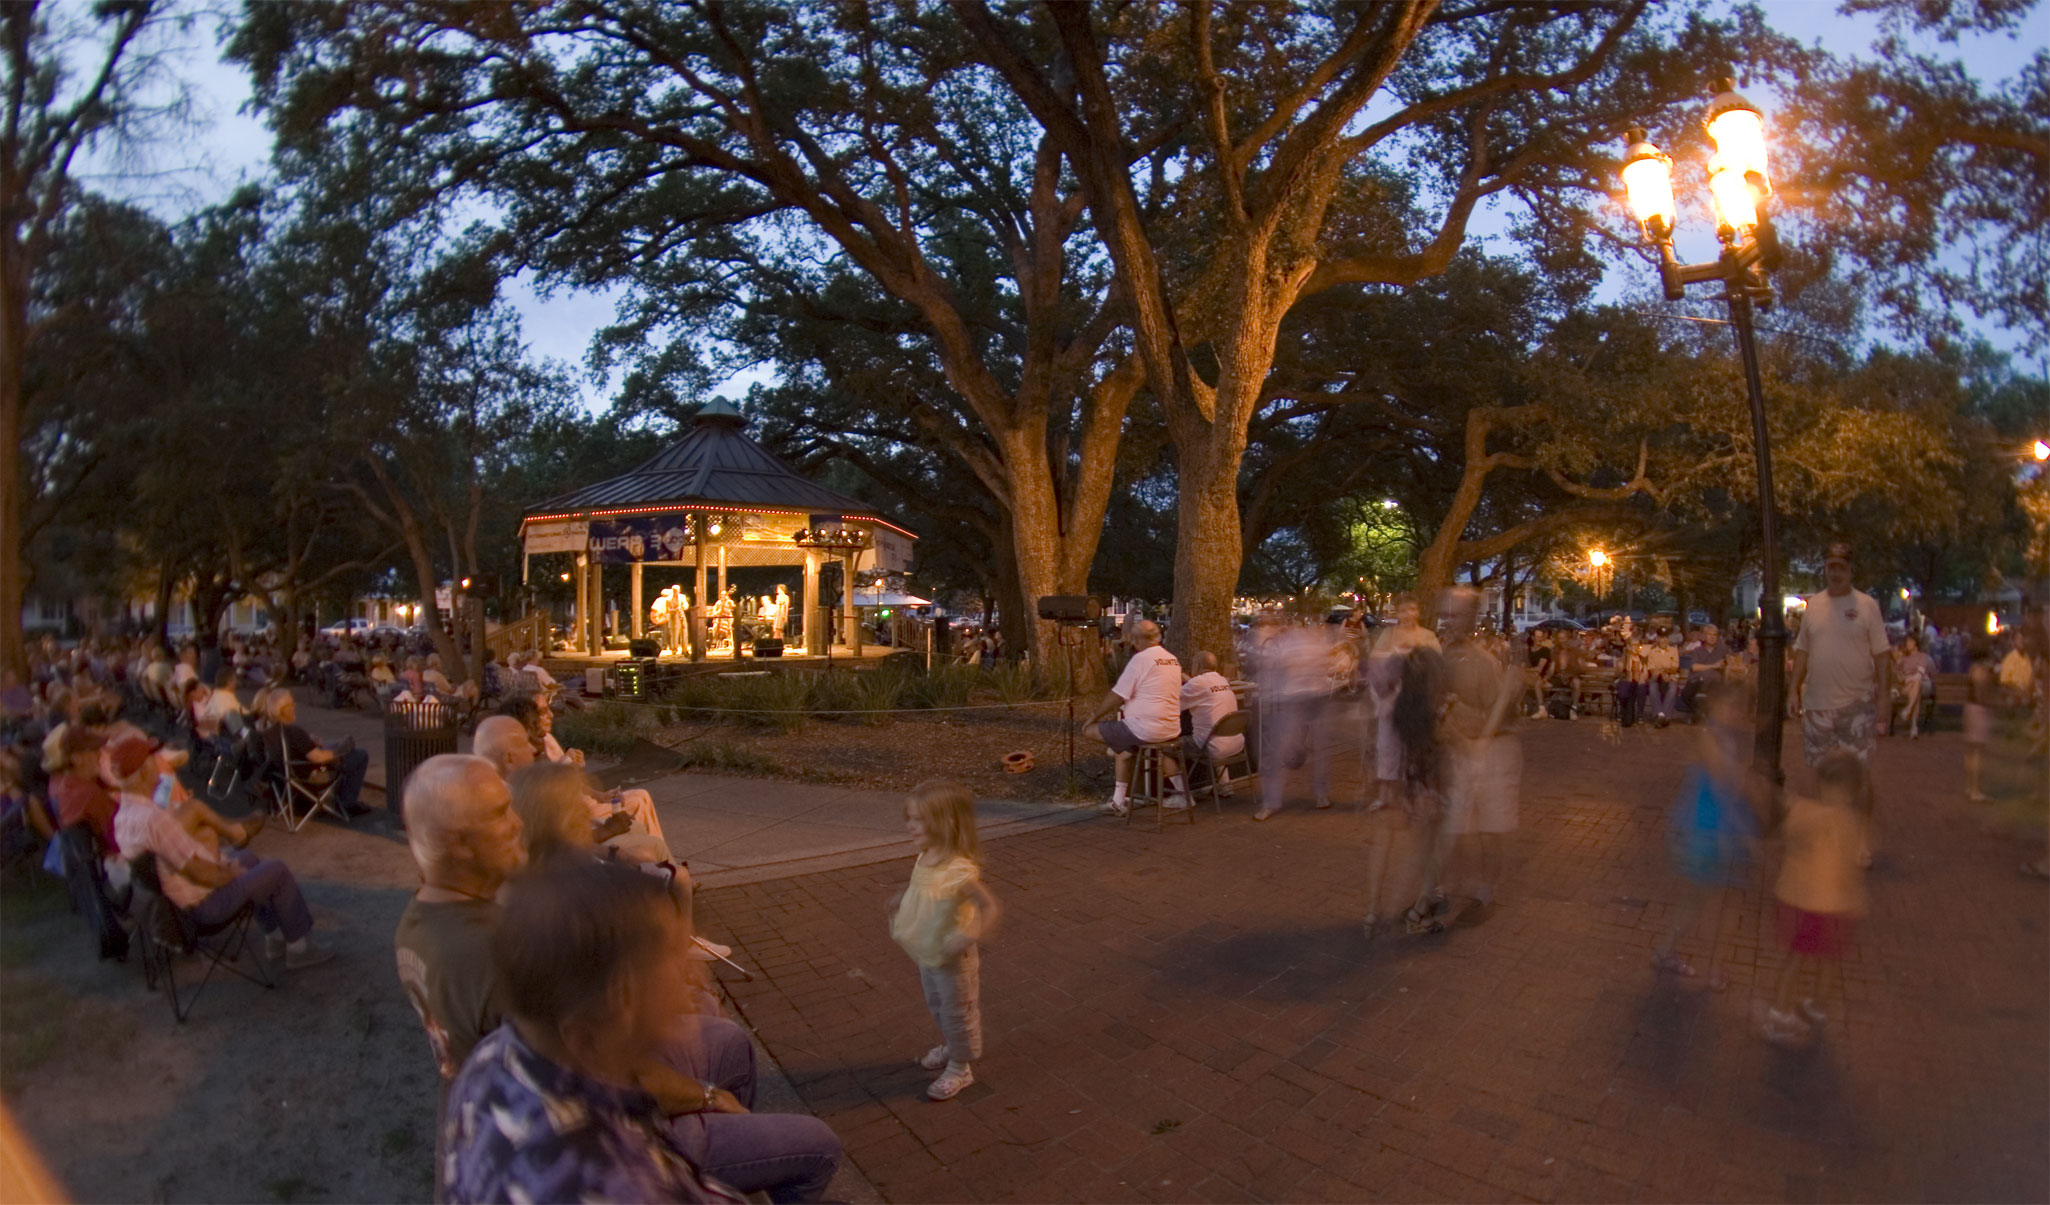 Crowd, Night, Tree, Evening